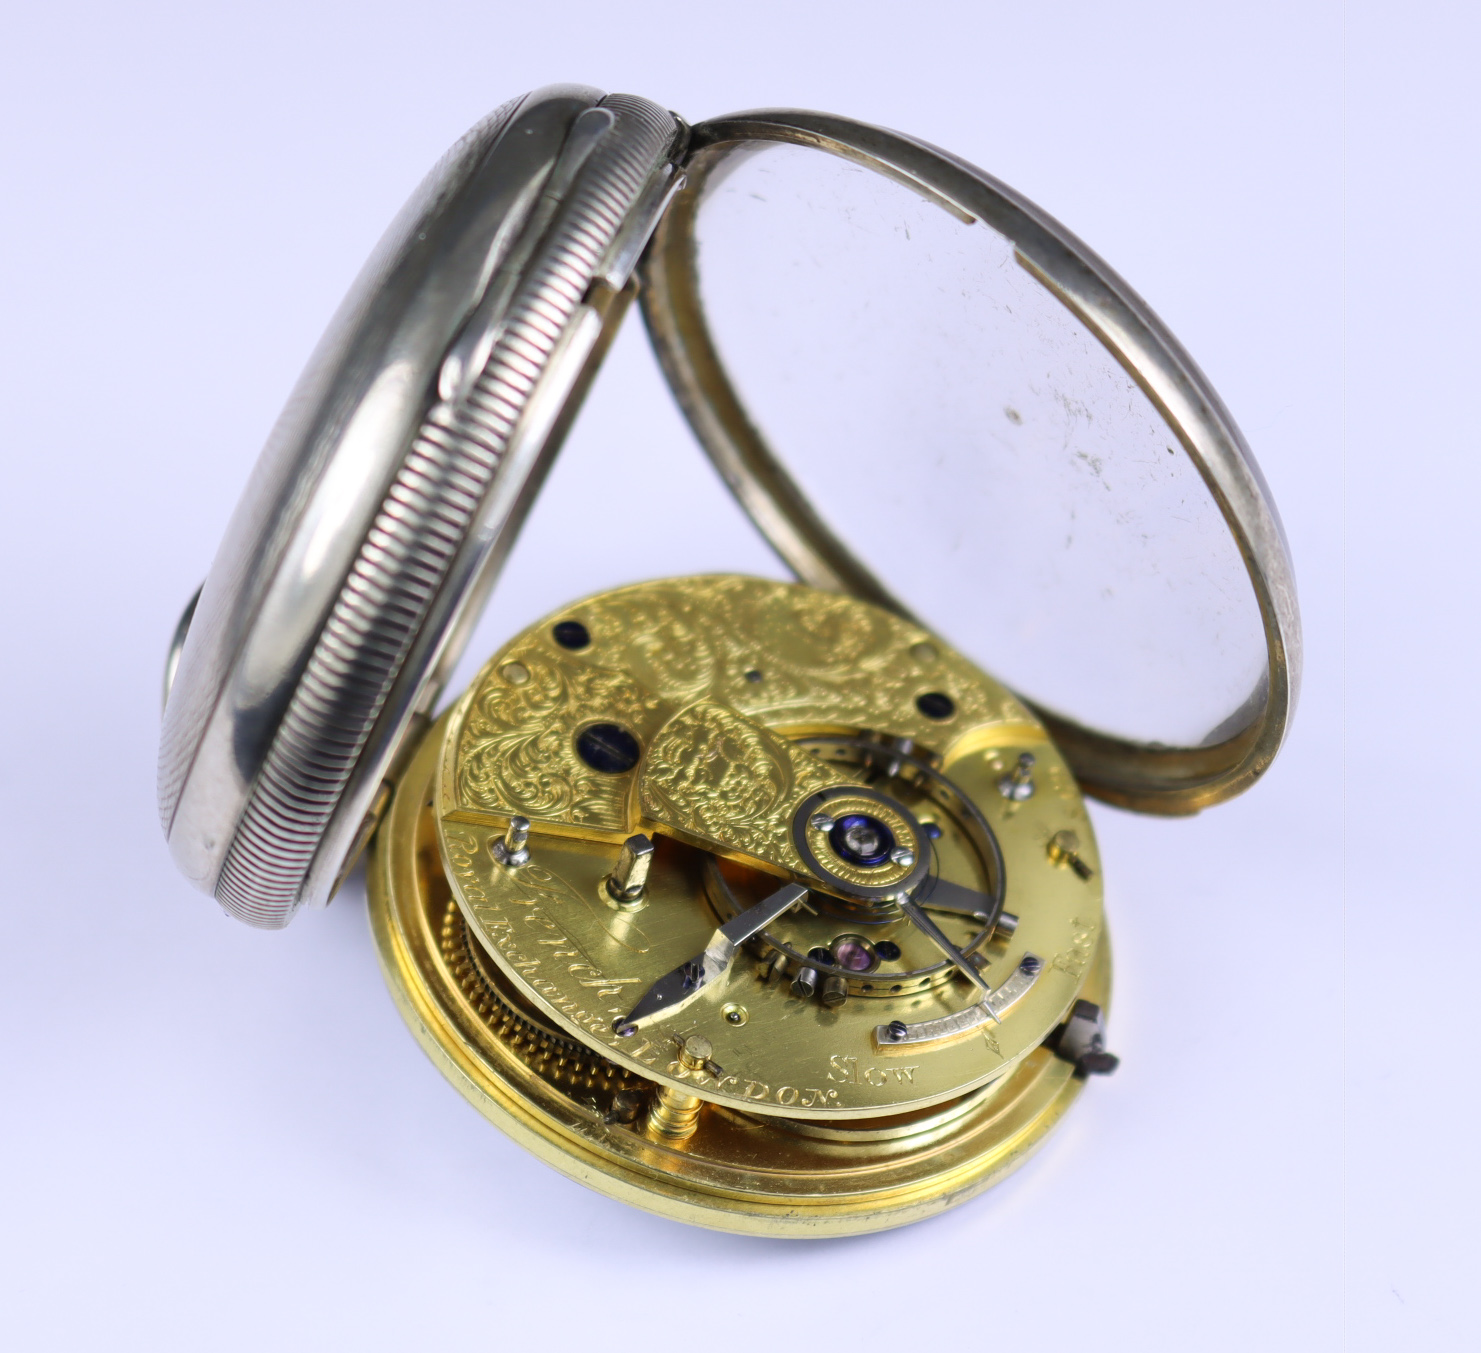 A Silver Cased Open Faced Duplex Pocket Watch, by French, Royal Exchange, London, 1830, 52mm - Image 2 of 2